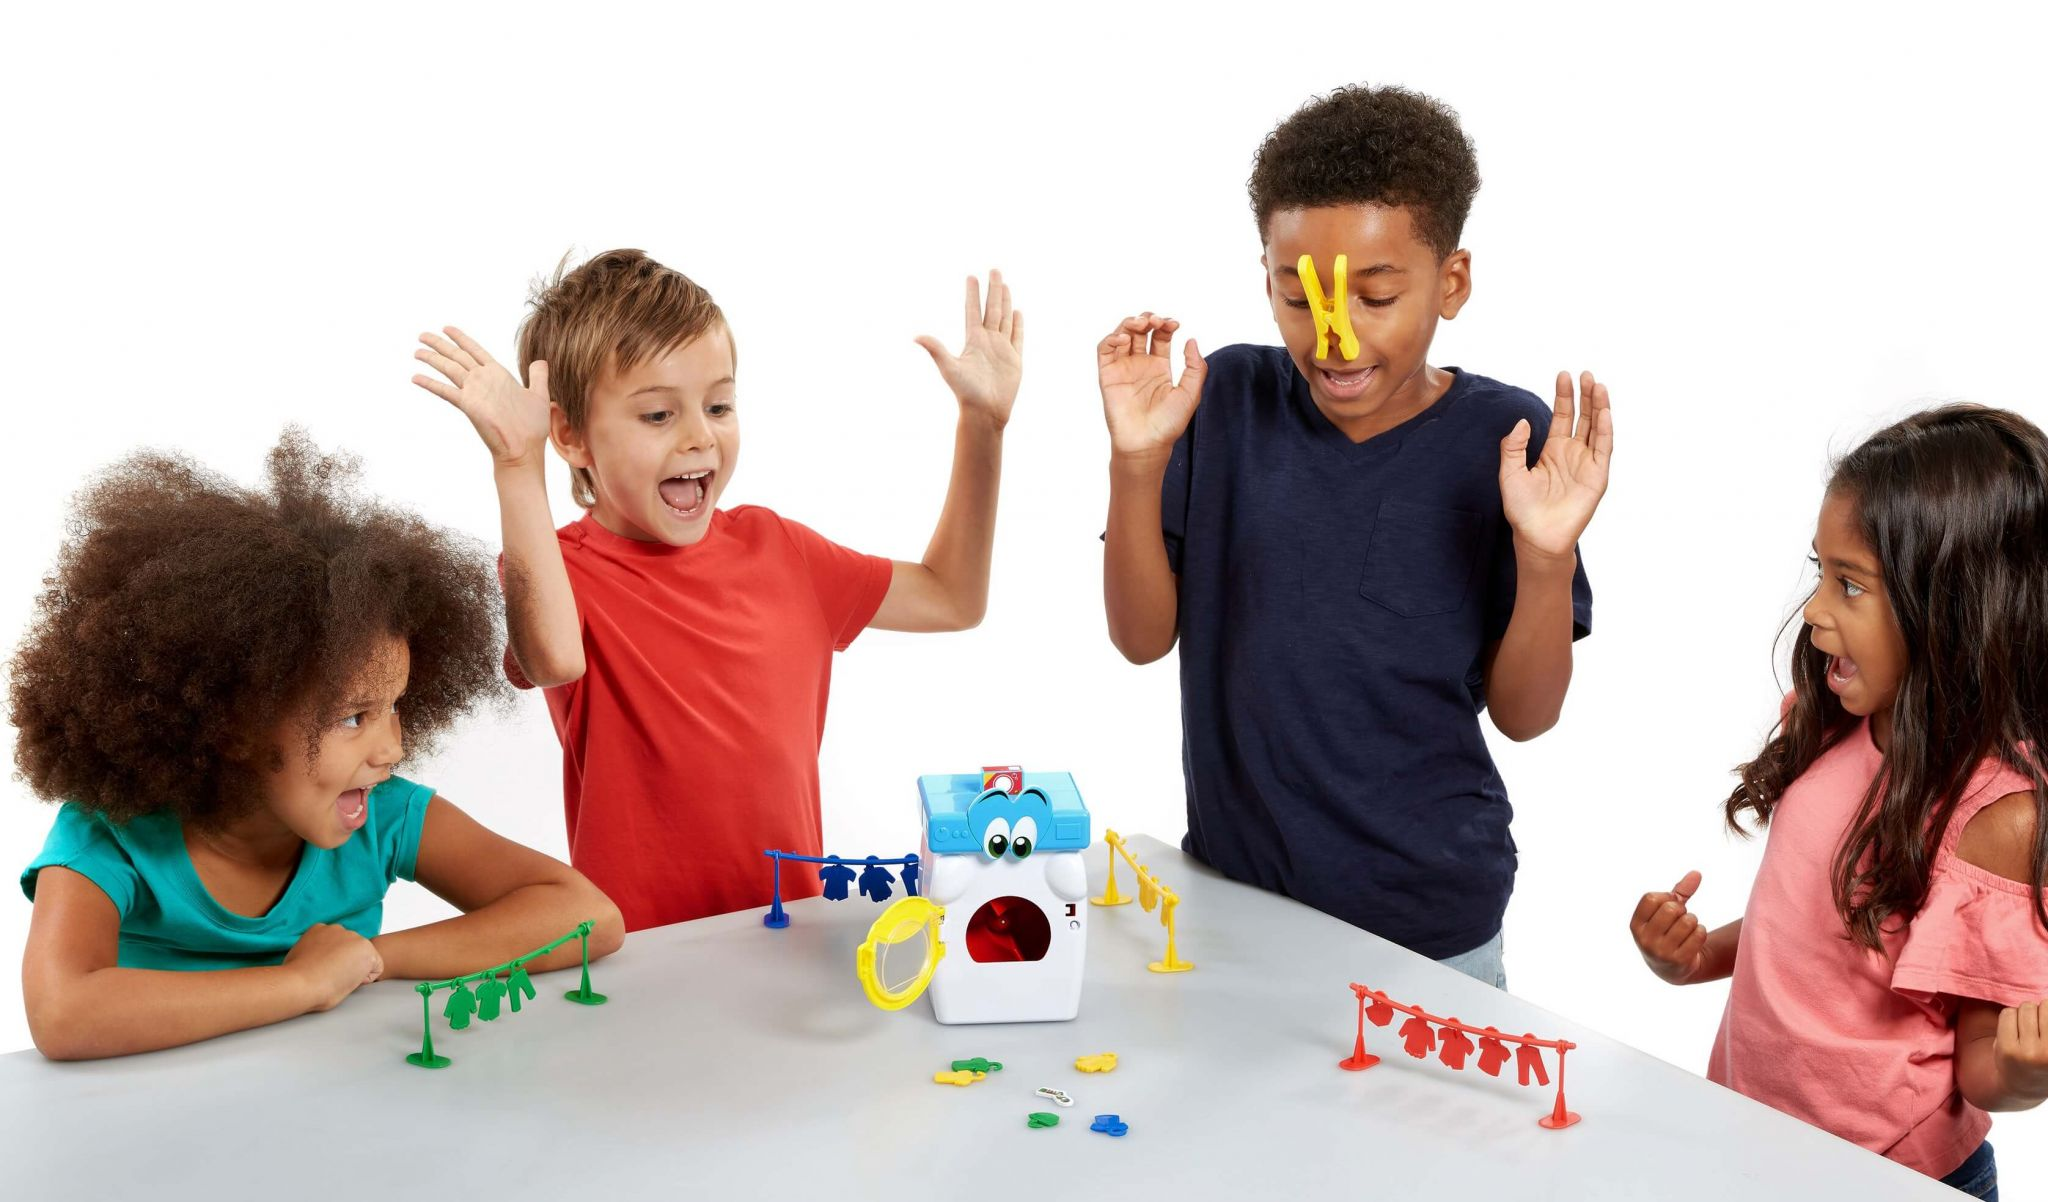 toy washing machine - kids playing Wally The Washer tabletop game